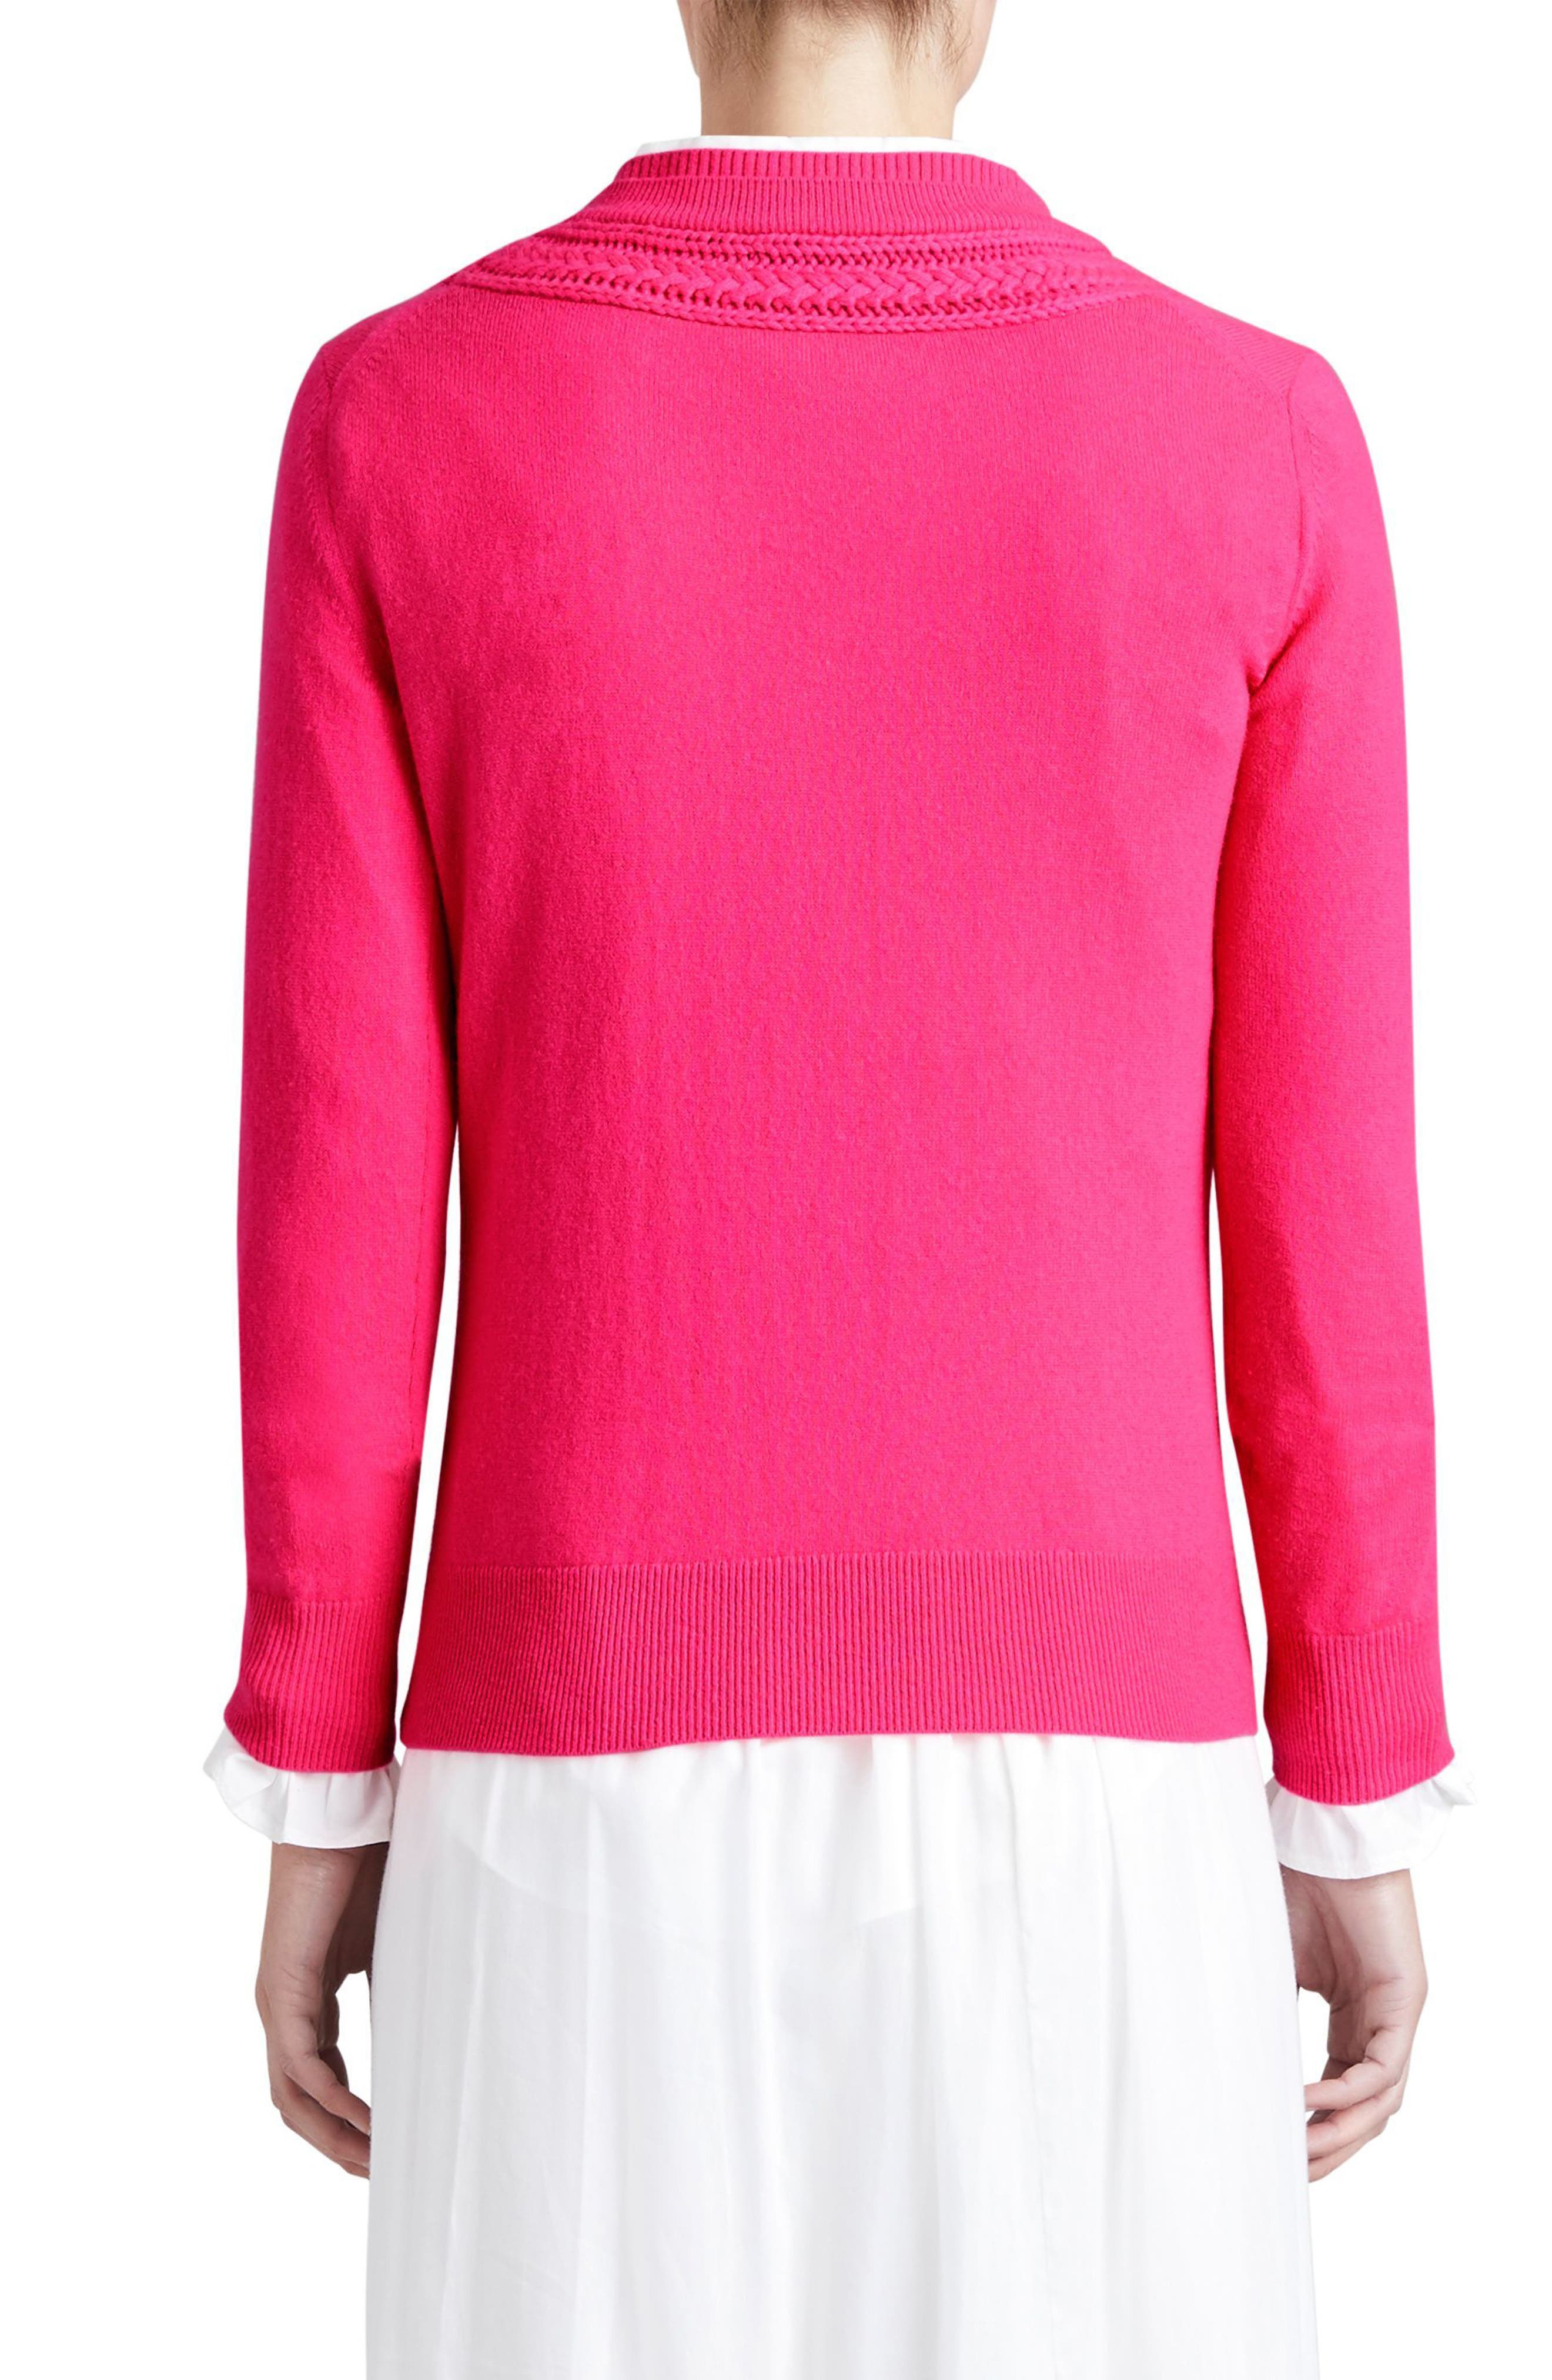 Guadaira Cashmere Sweater,                             Alternate thumbnail 2, color,                             Bright Rose Pink